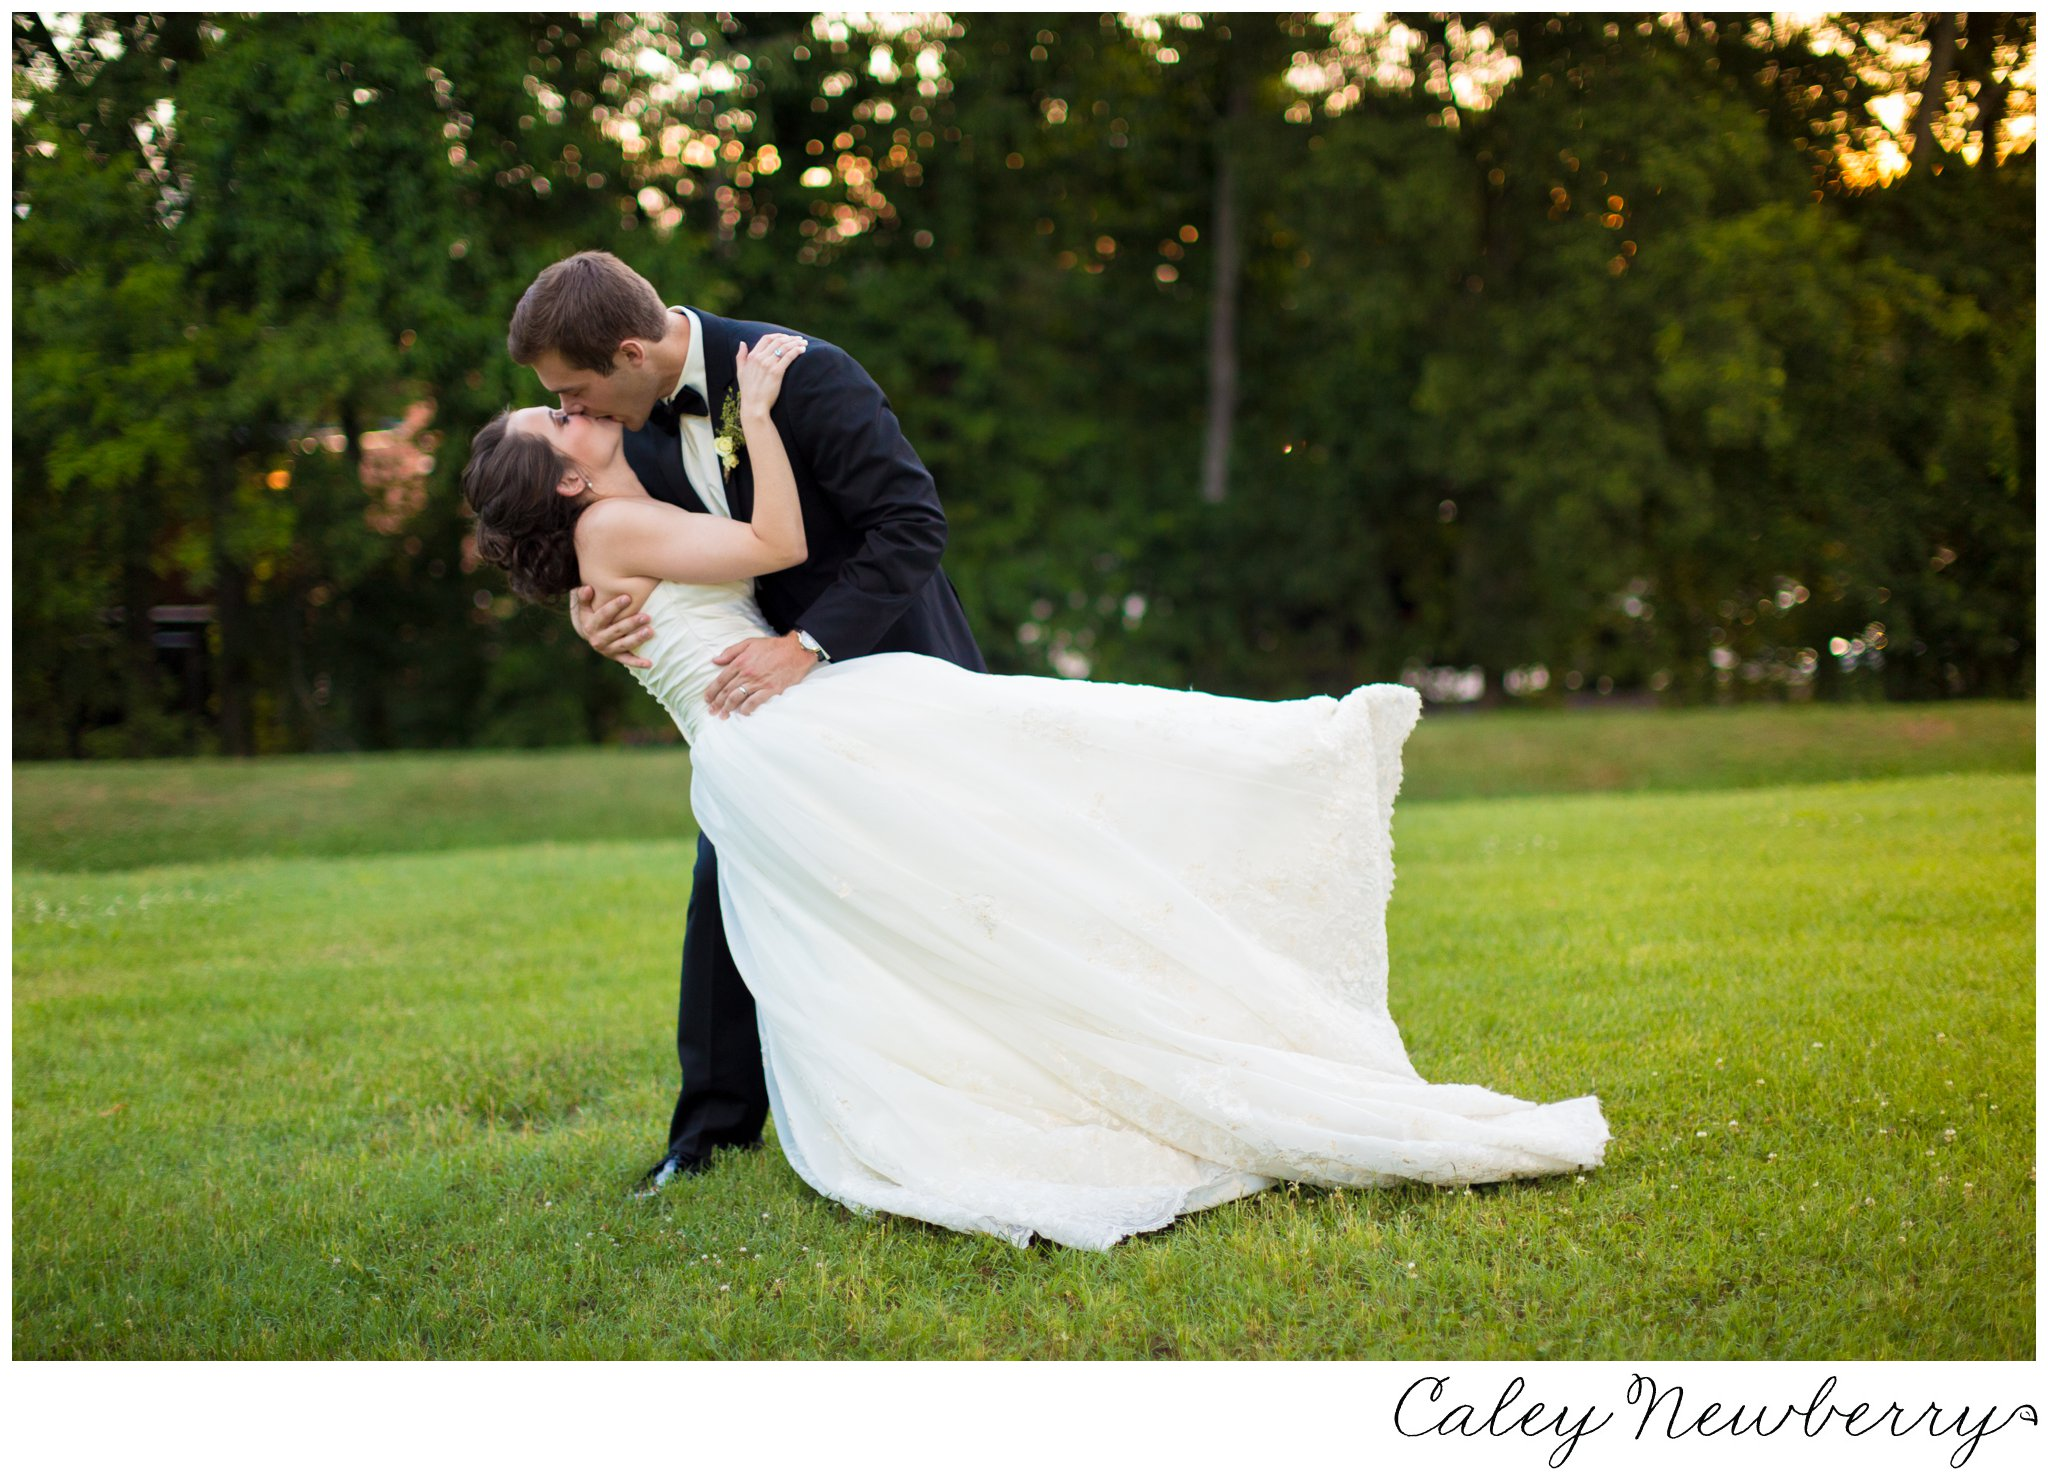 wedding-photographer-brentwood-tn.jpg